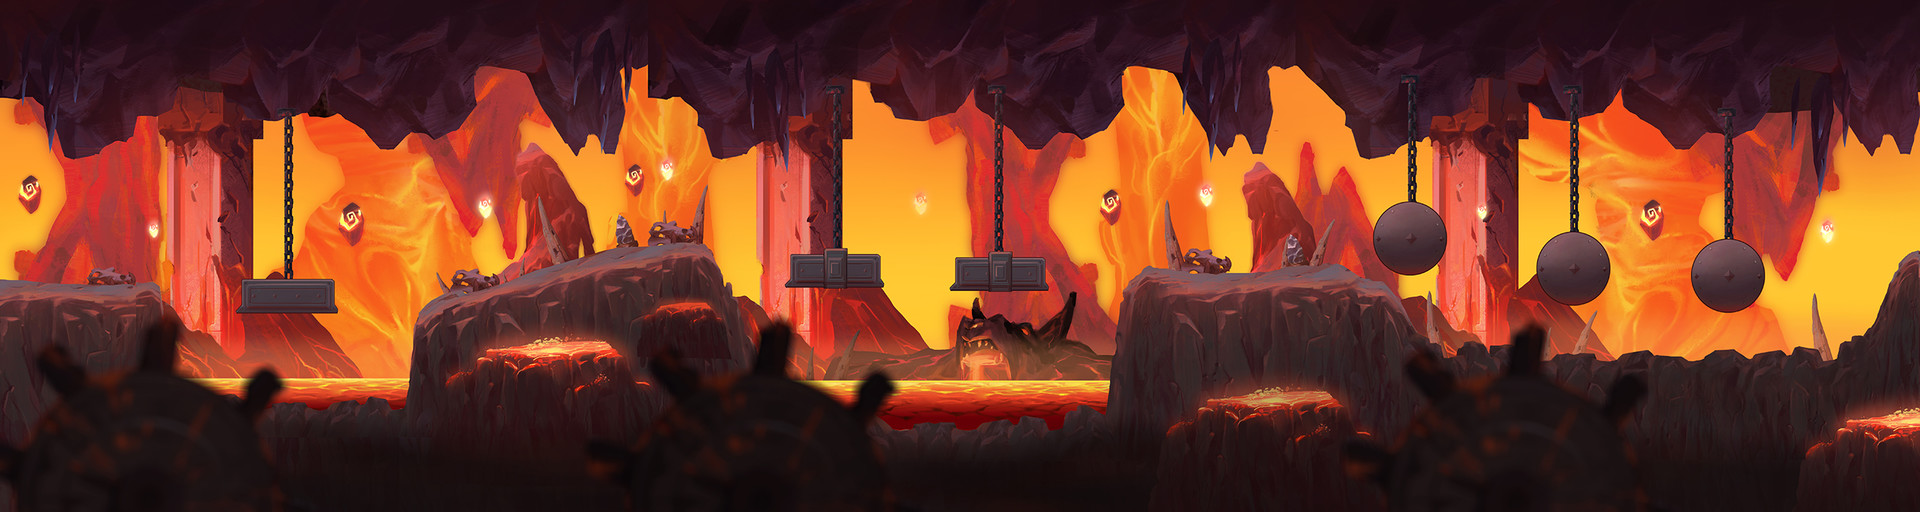 Yujin choo lava level 4 finish artdirection copy